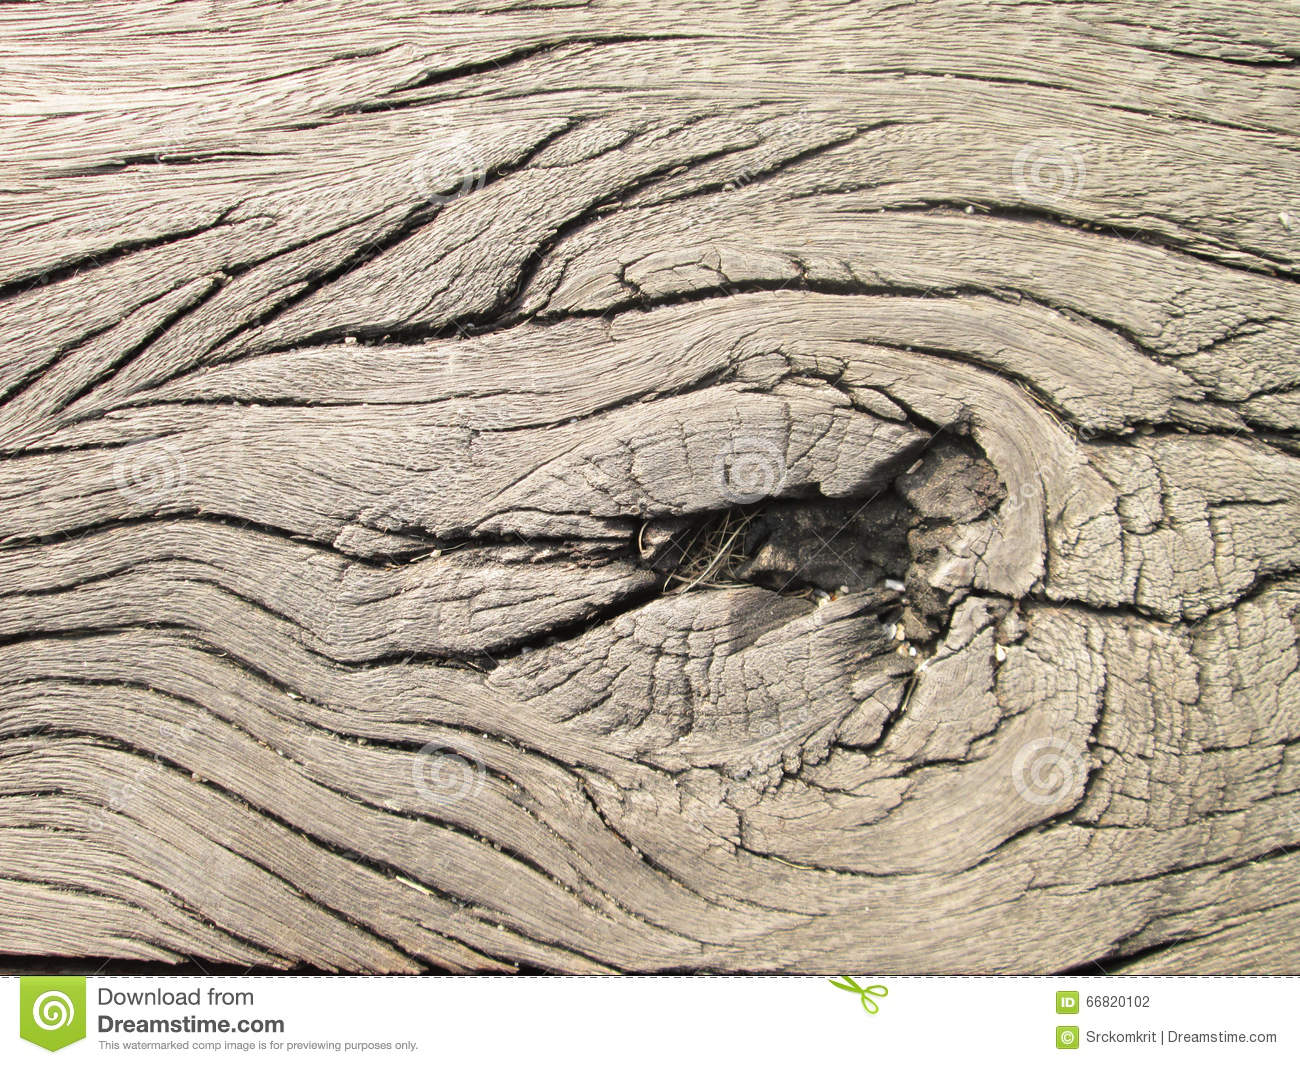 Old wooden texture made by nature. Dried wooden board